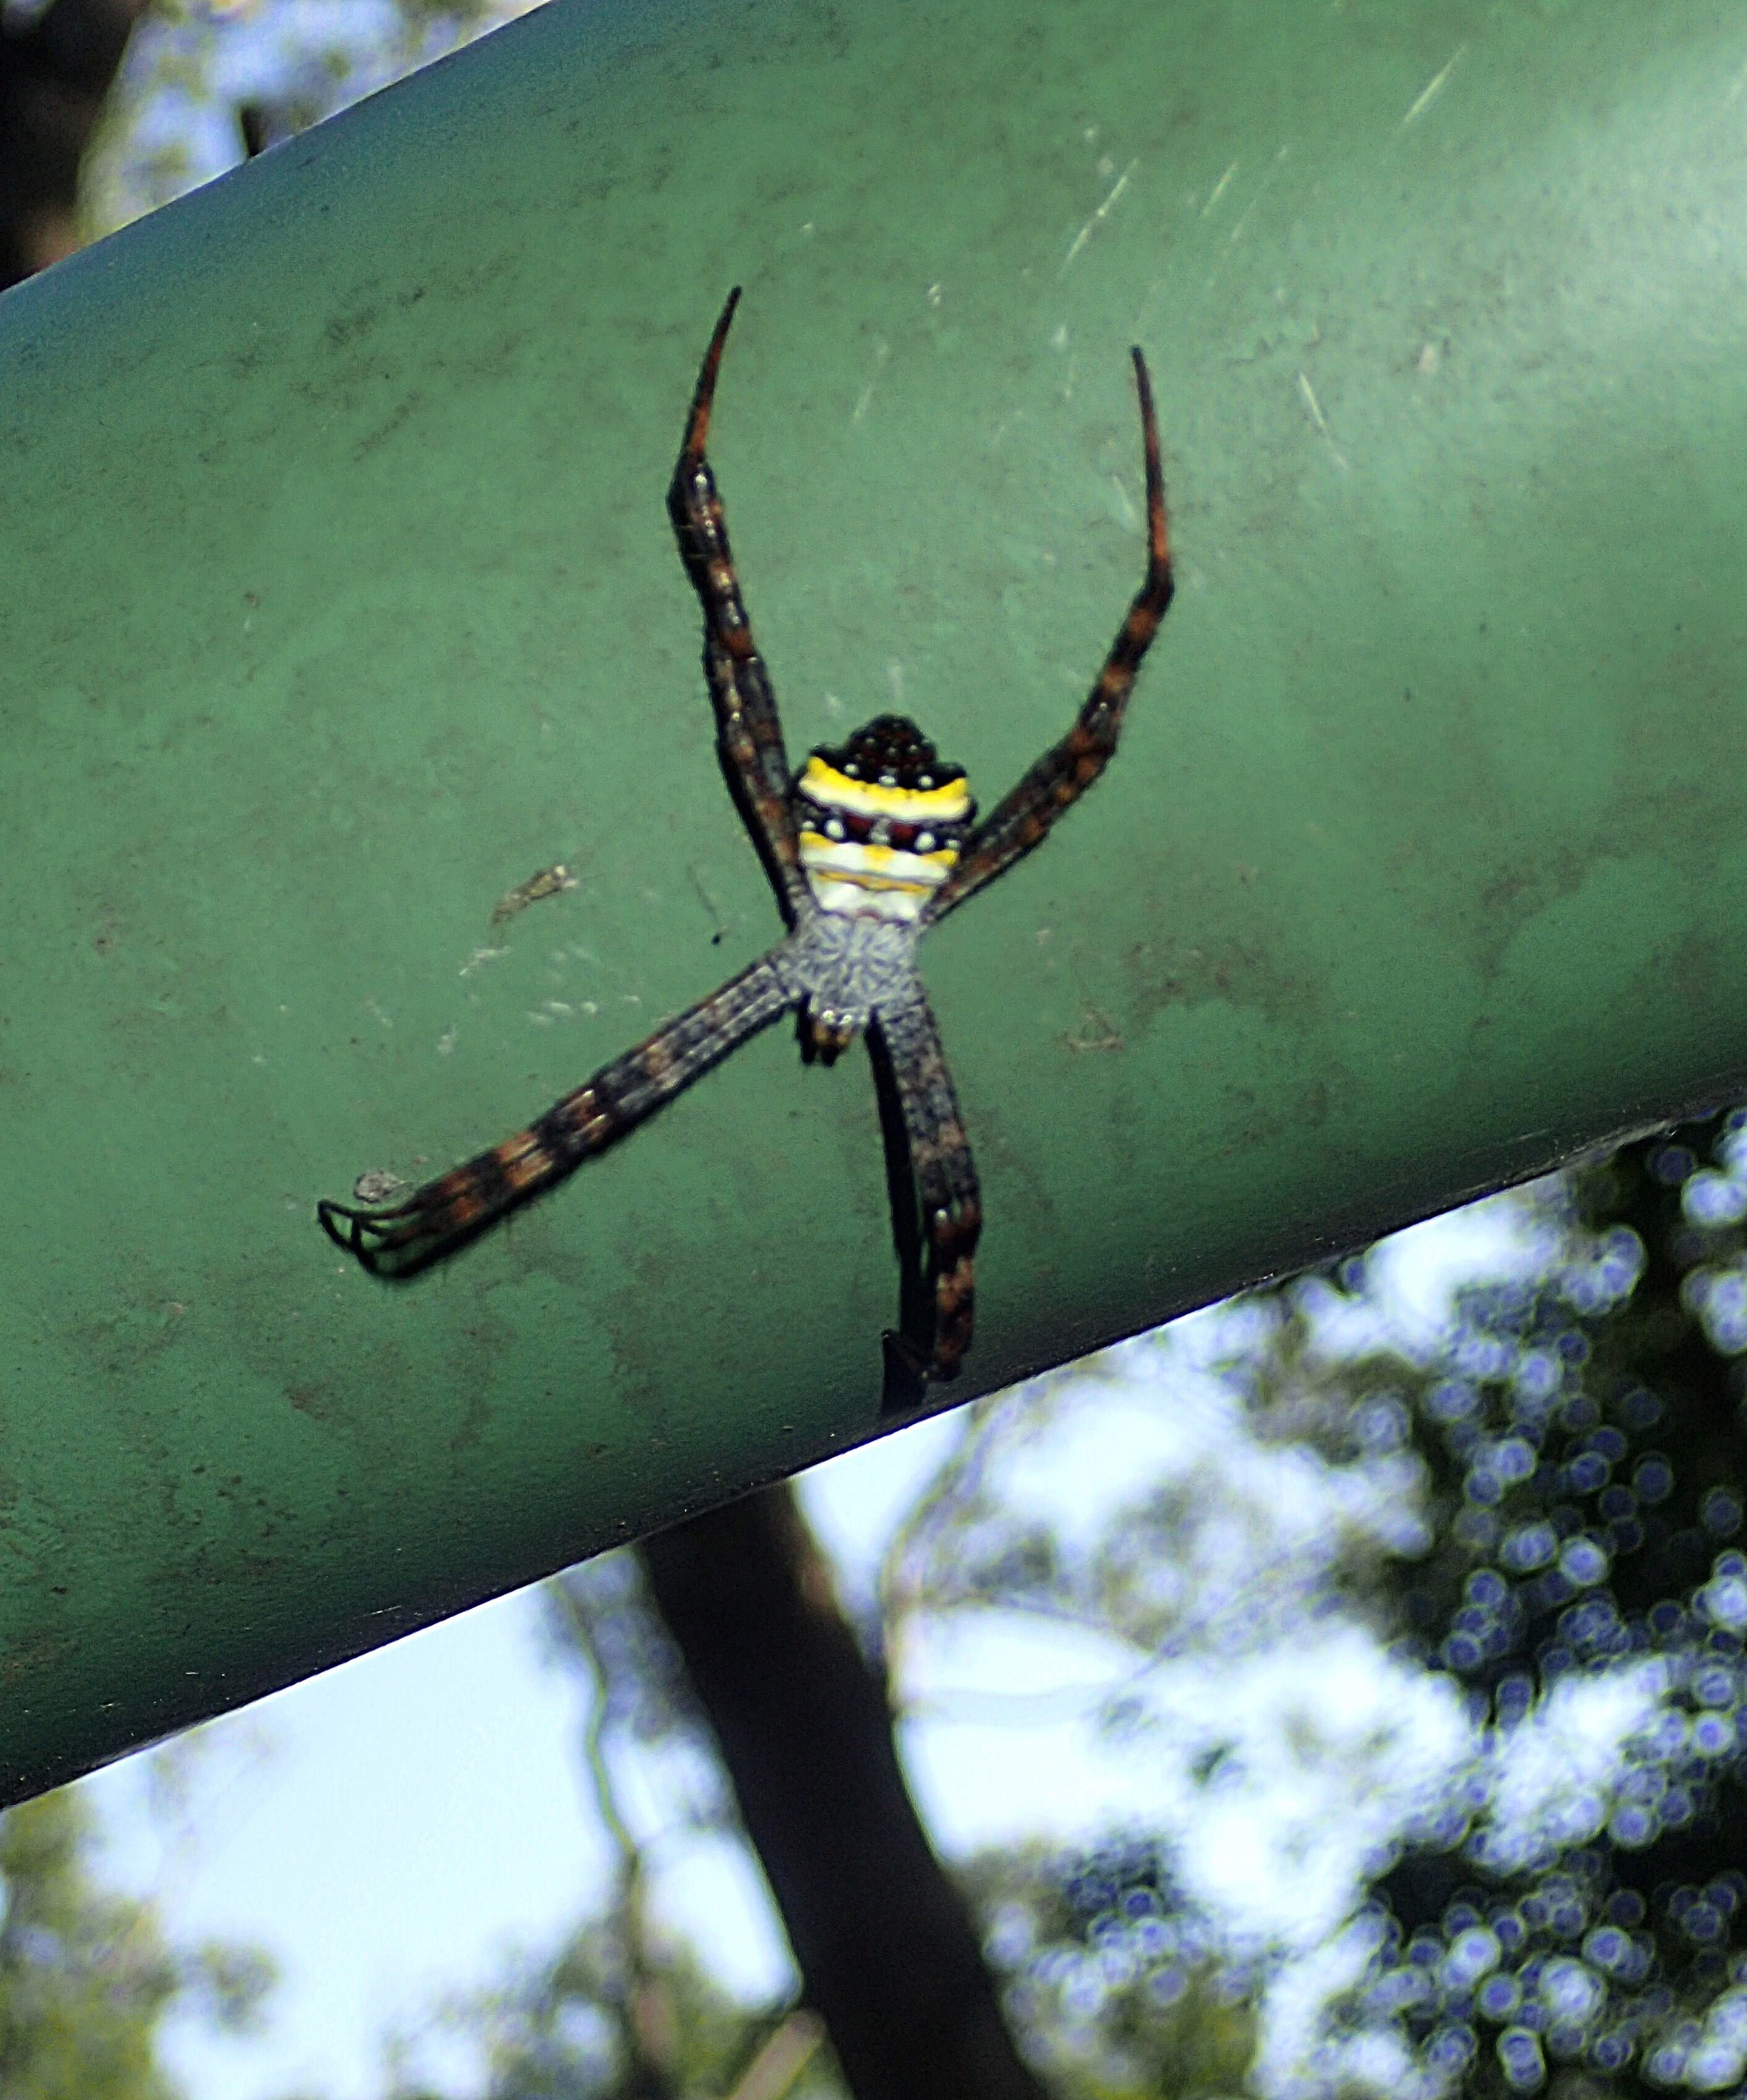 A St Andrew's Cross spider in Erziping